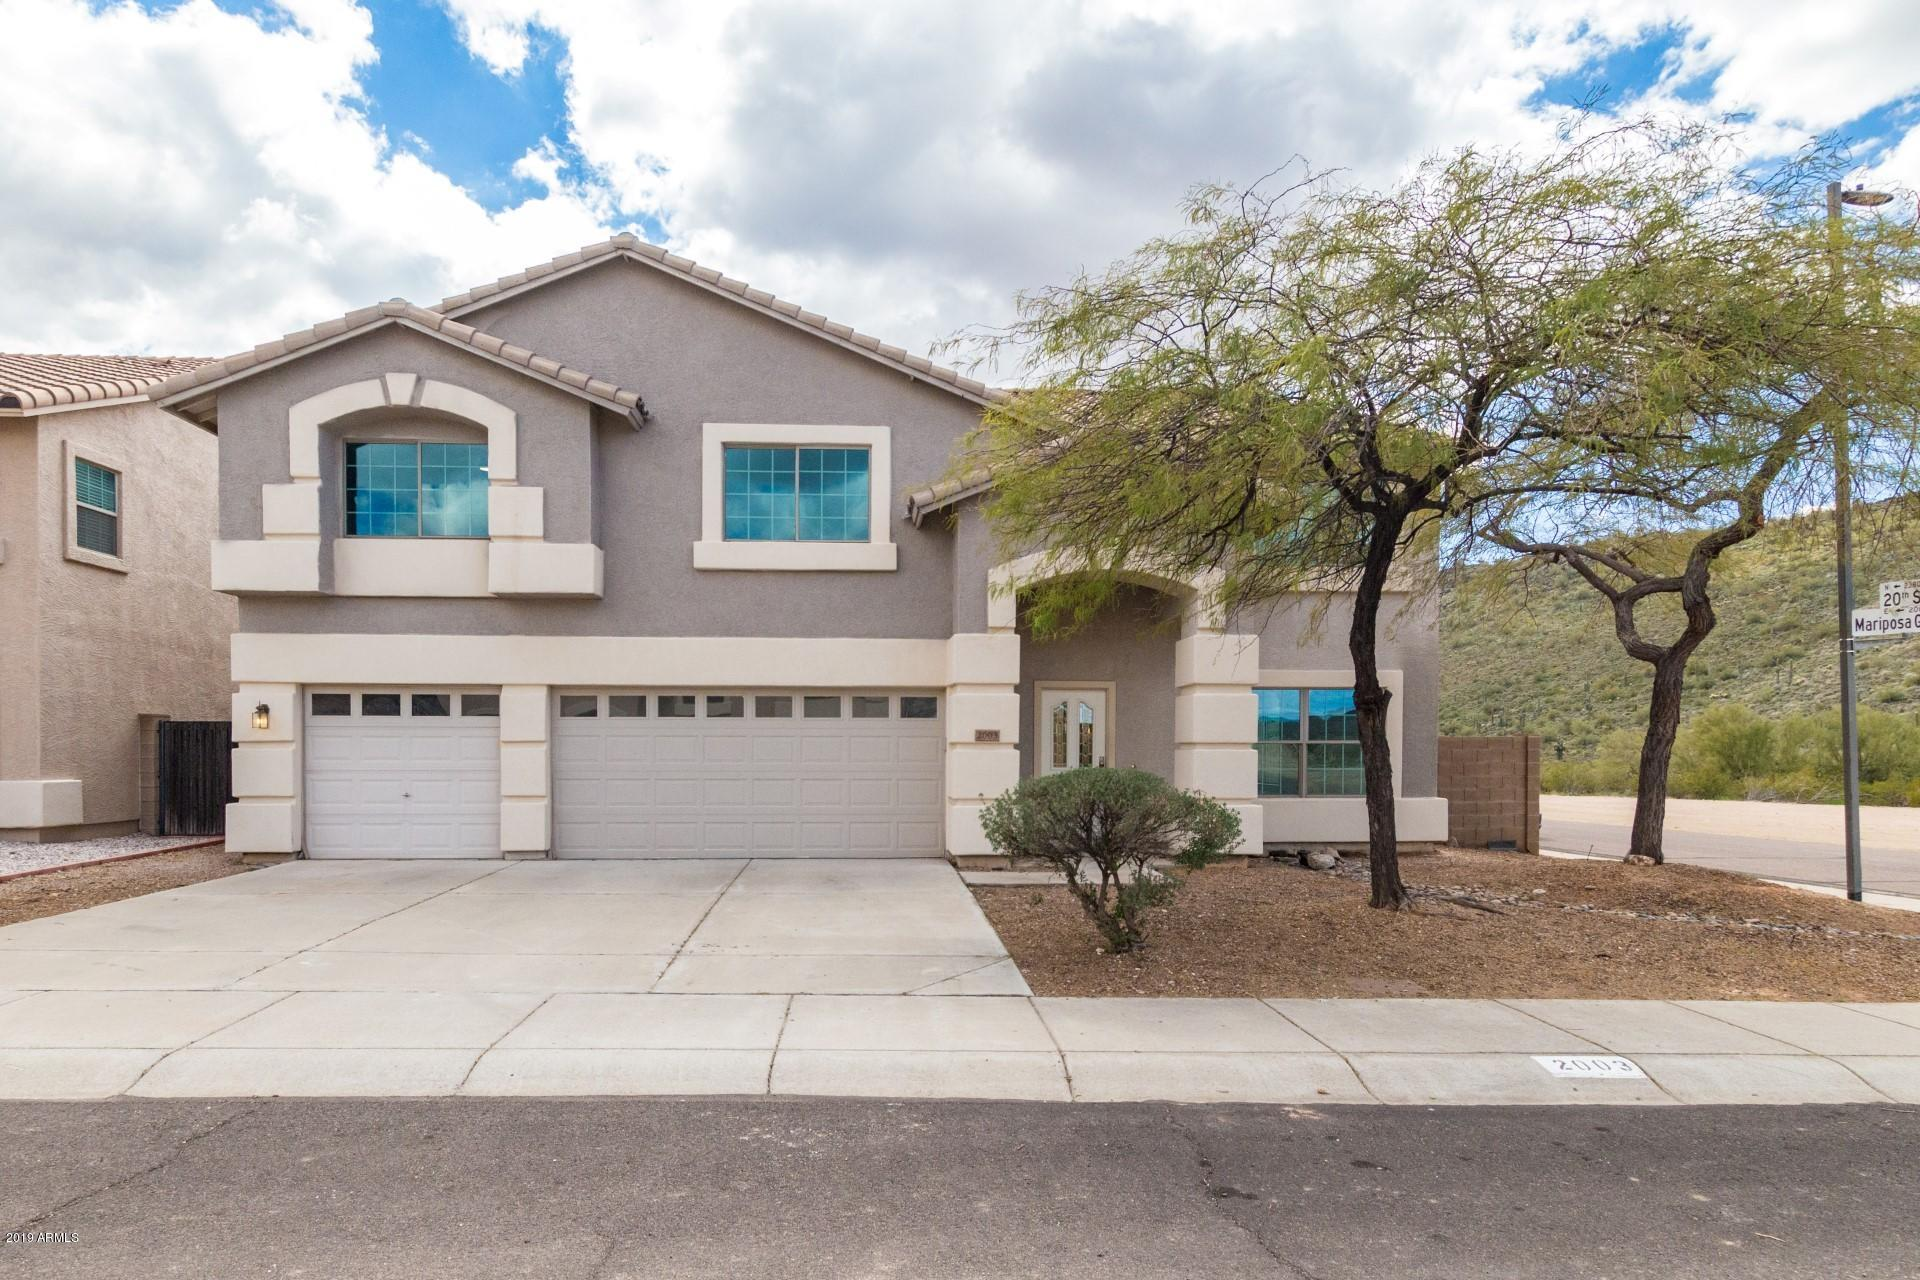 Photo of 2003 E MARIPOSA GRANDE Street, Phoenix, AZ 85024